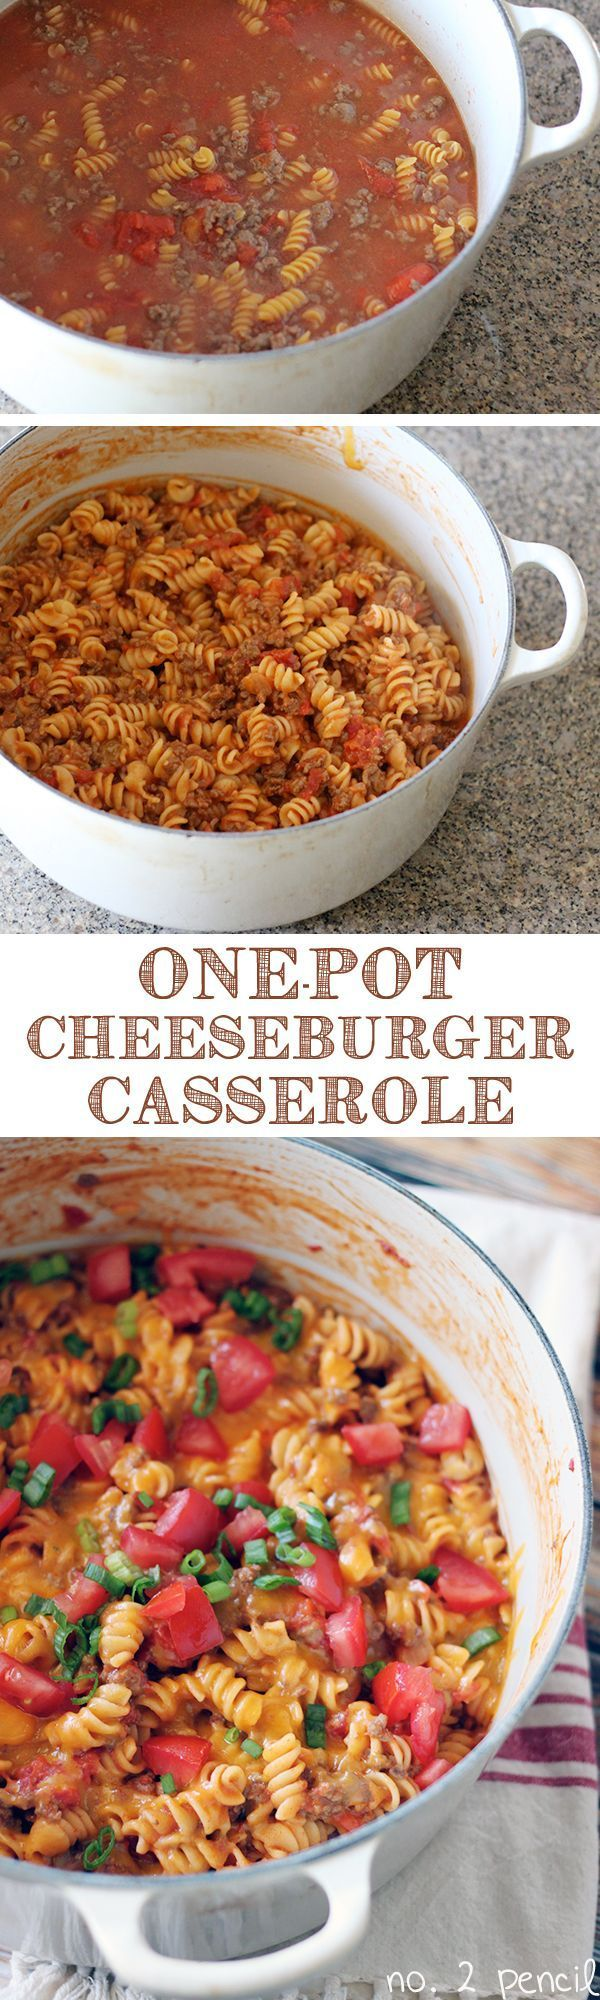 Easy dinner recipes? This One-Pot Cheeseburger Casserole is a quick and tasty casserole that's perfect for dinner! If your family likes spaghetti and sloppy joes, they will love cheeseburger casserole! For more easy food recipes, creative craft ideas, eas